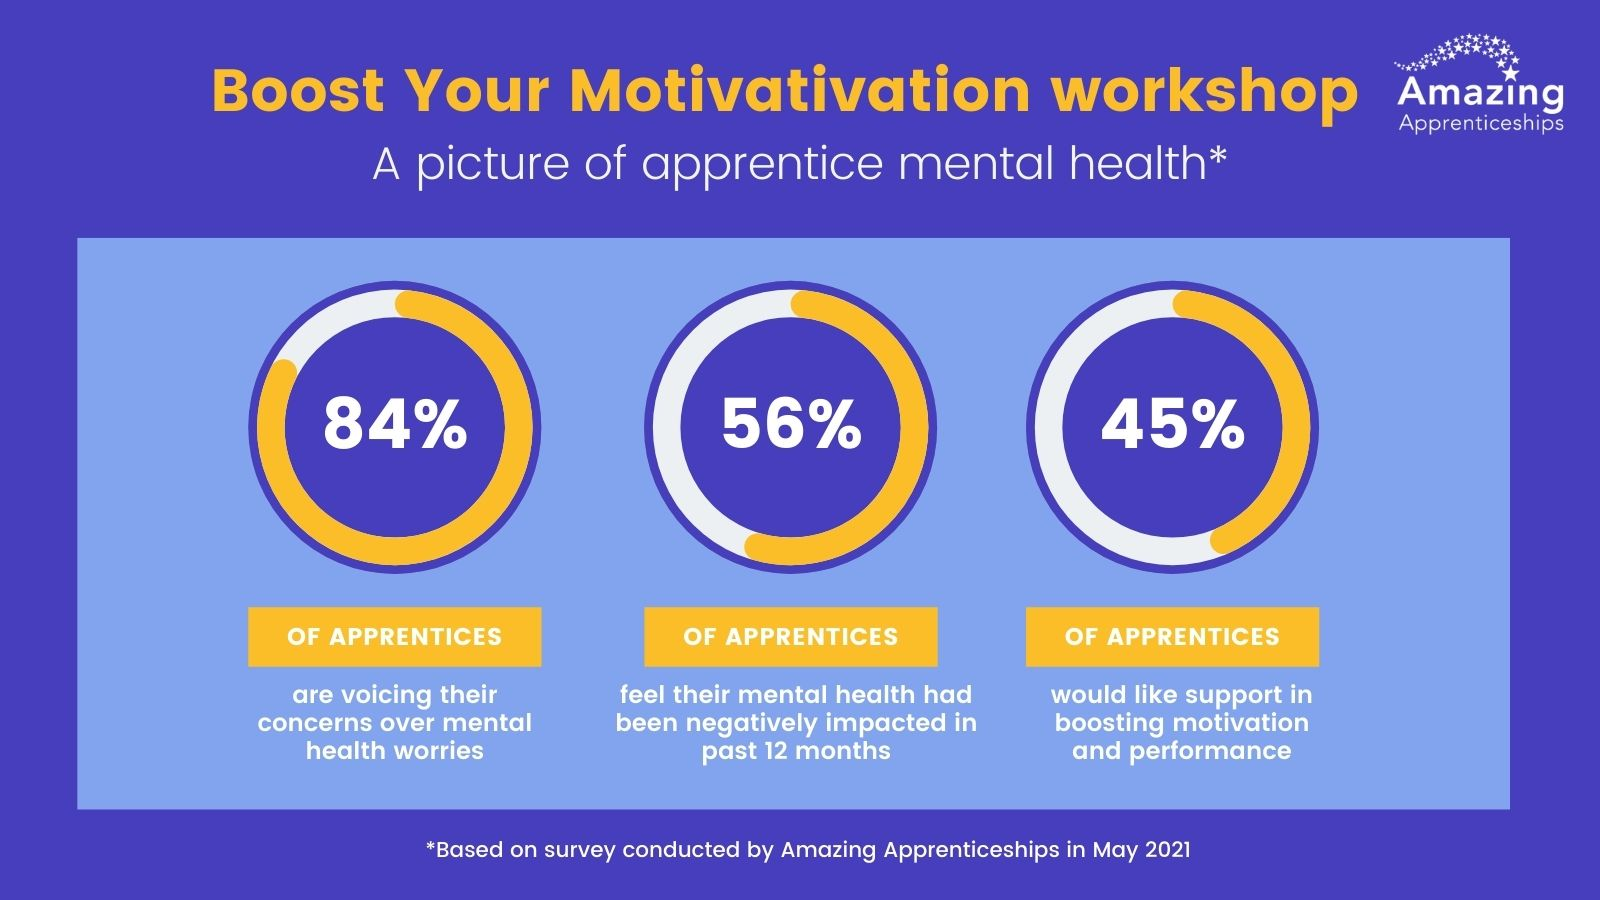 Amazing Apprenticeships host free mental health webinars for apprentices, employers and providers to mark Mental Health Awareness Week